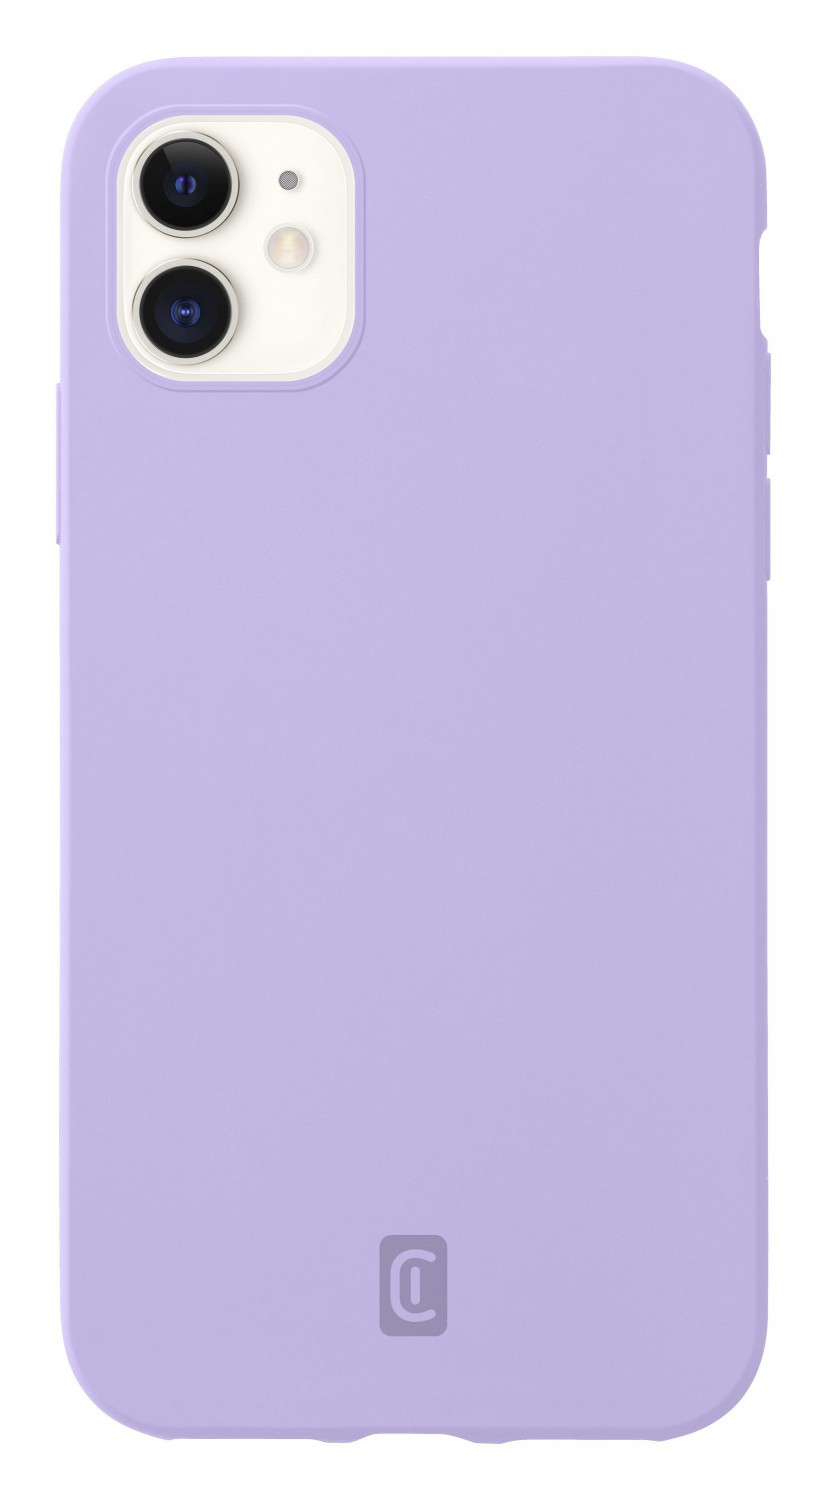 Cellularline Sensation silikonový kryt, pouzdro, obal Apple iPhone 12 mini violet